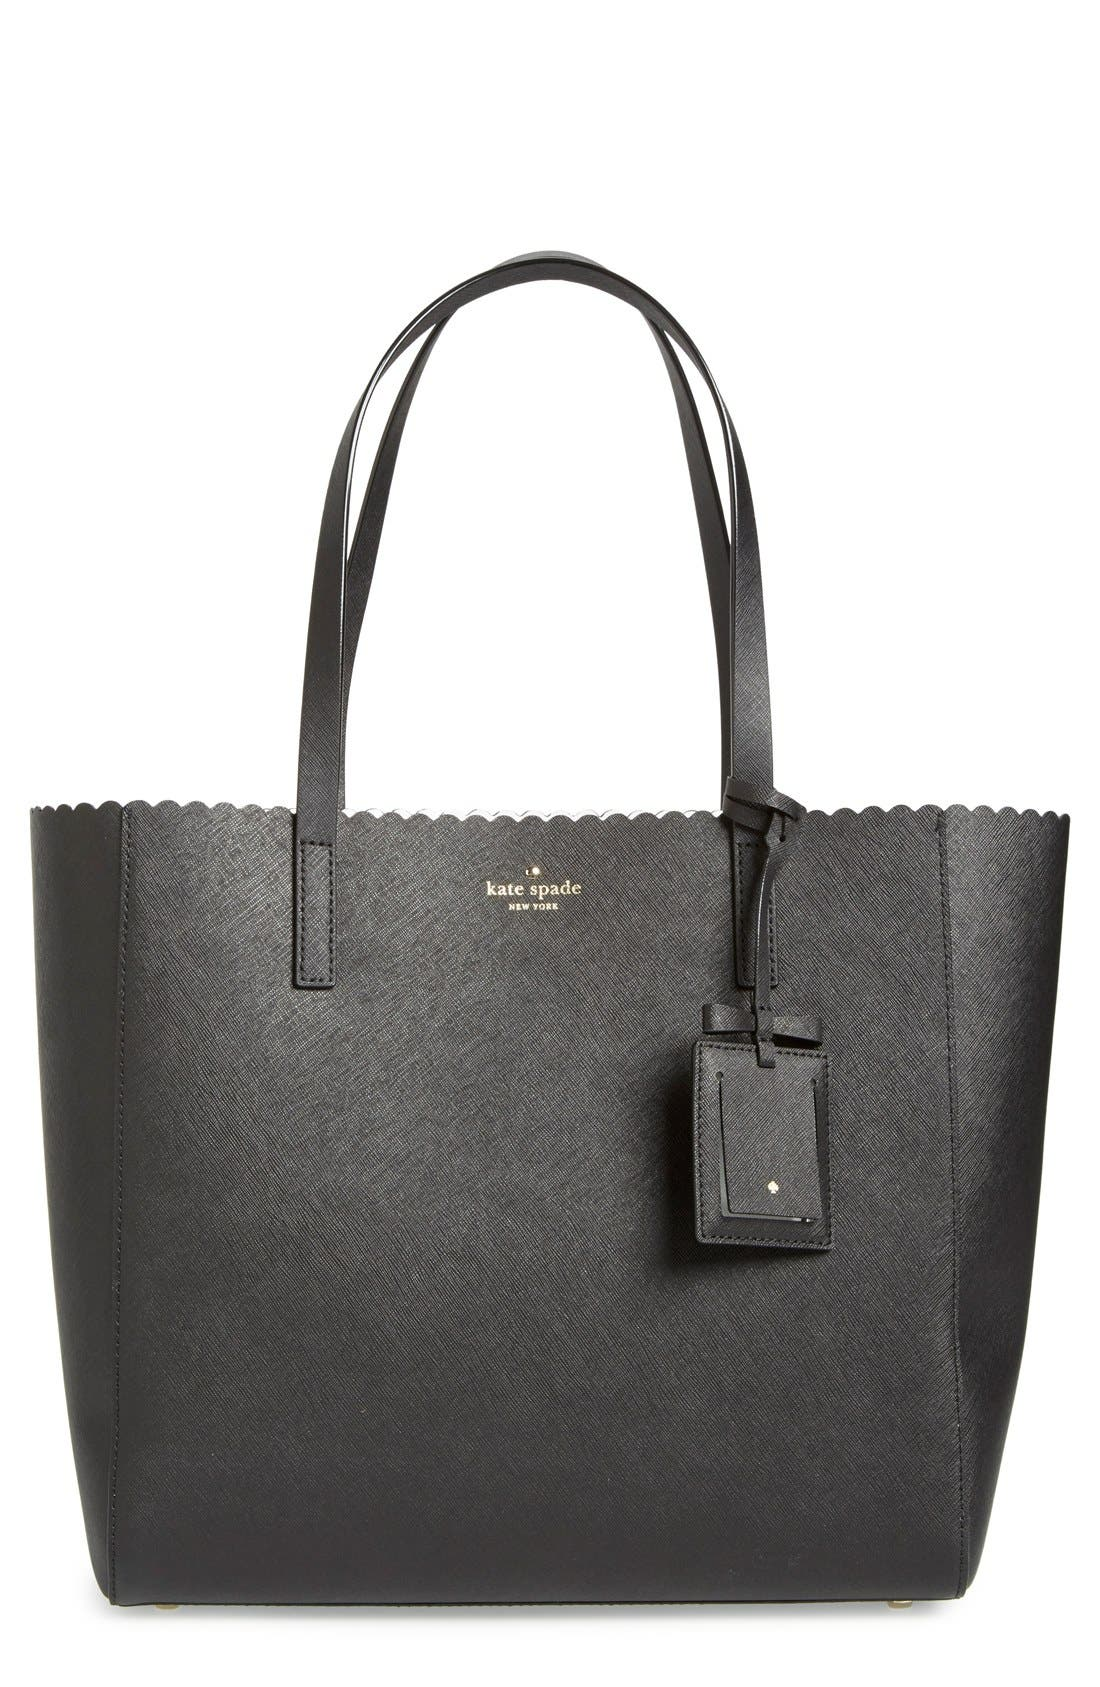 KATE SPADE NEW YORK,                             'cape drive - hallie' scalloped saffiano leather tote,                             Main thumbnail 1, color,                             002